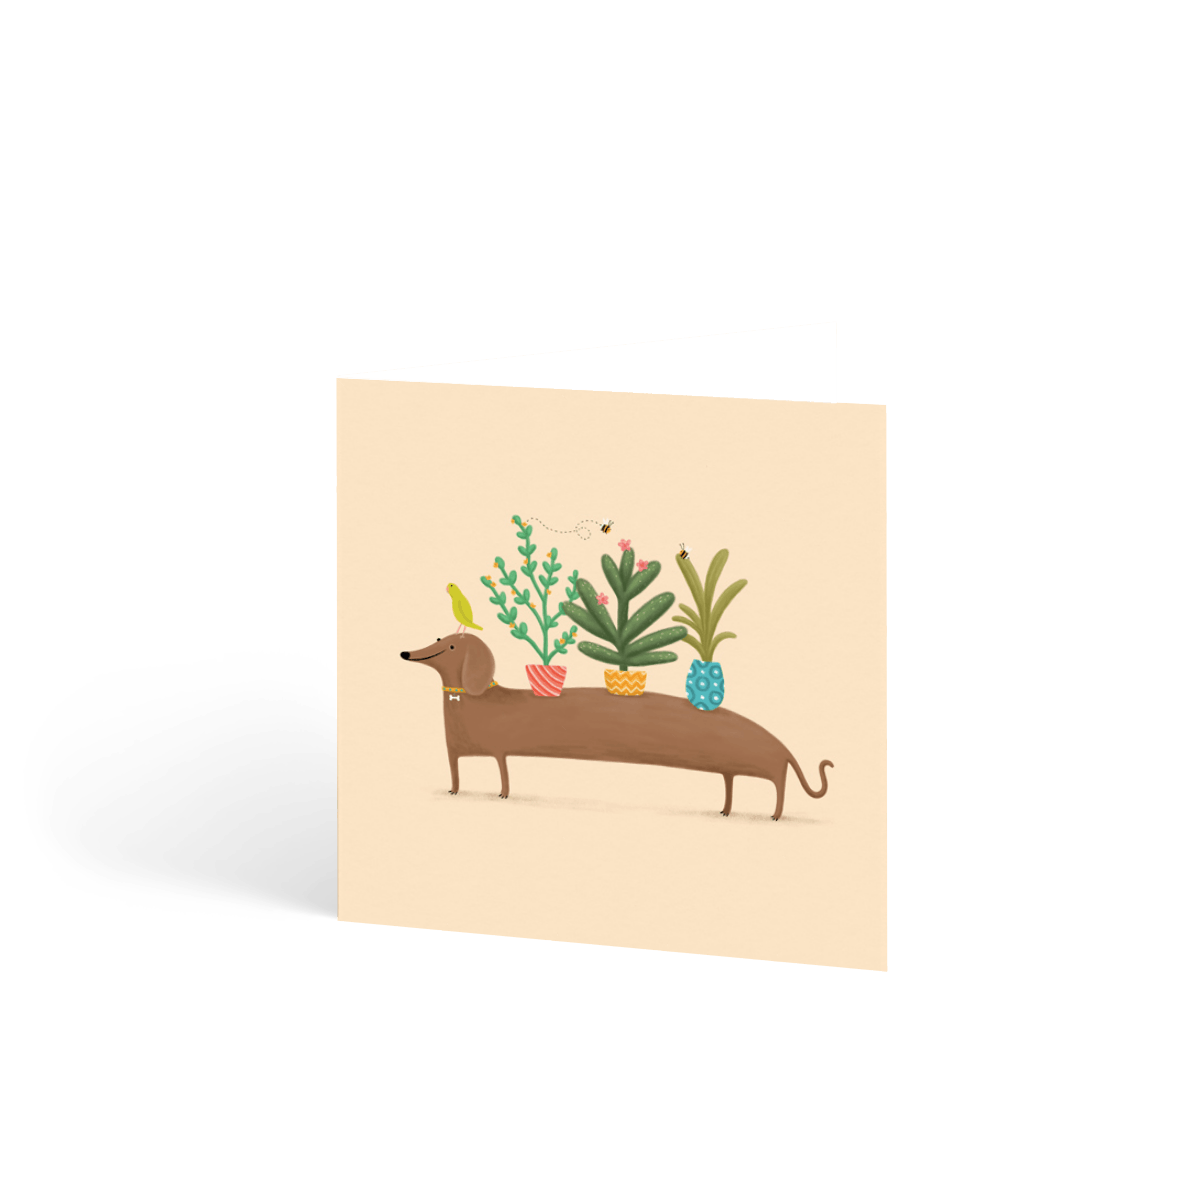 Https%3a%2f%2fwww.papier.com%2fproduct image%2f79681%2f16%2fdachshund plants 18818 front 1560958133.png?ixlib=rb 1.1